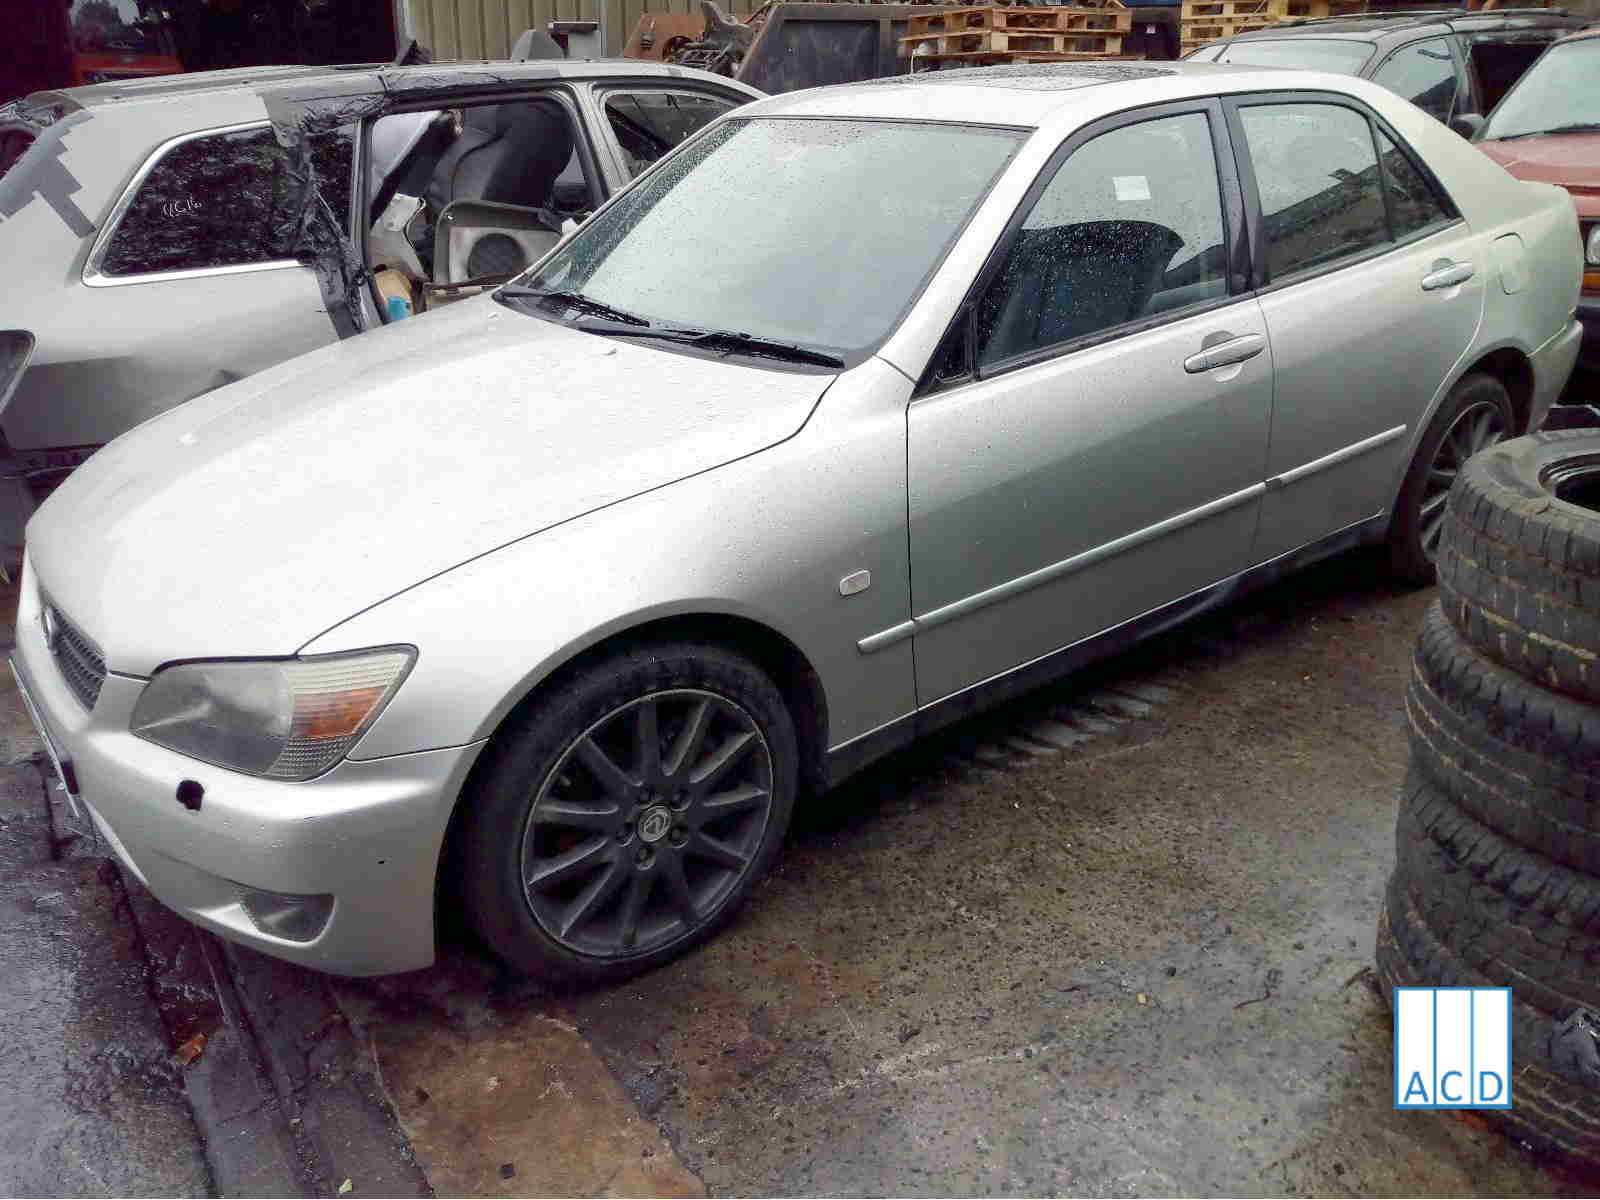 04 IS 200 Used parts for sale